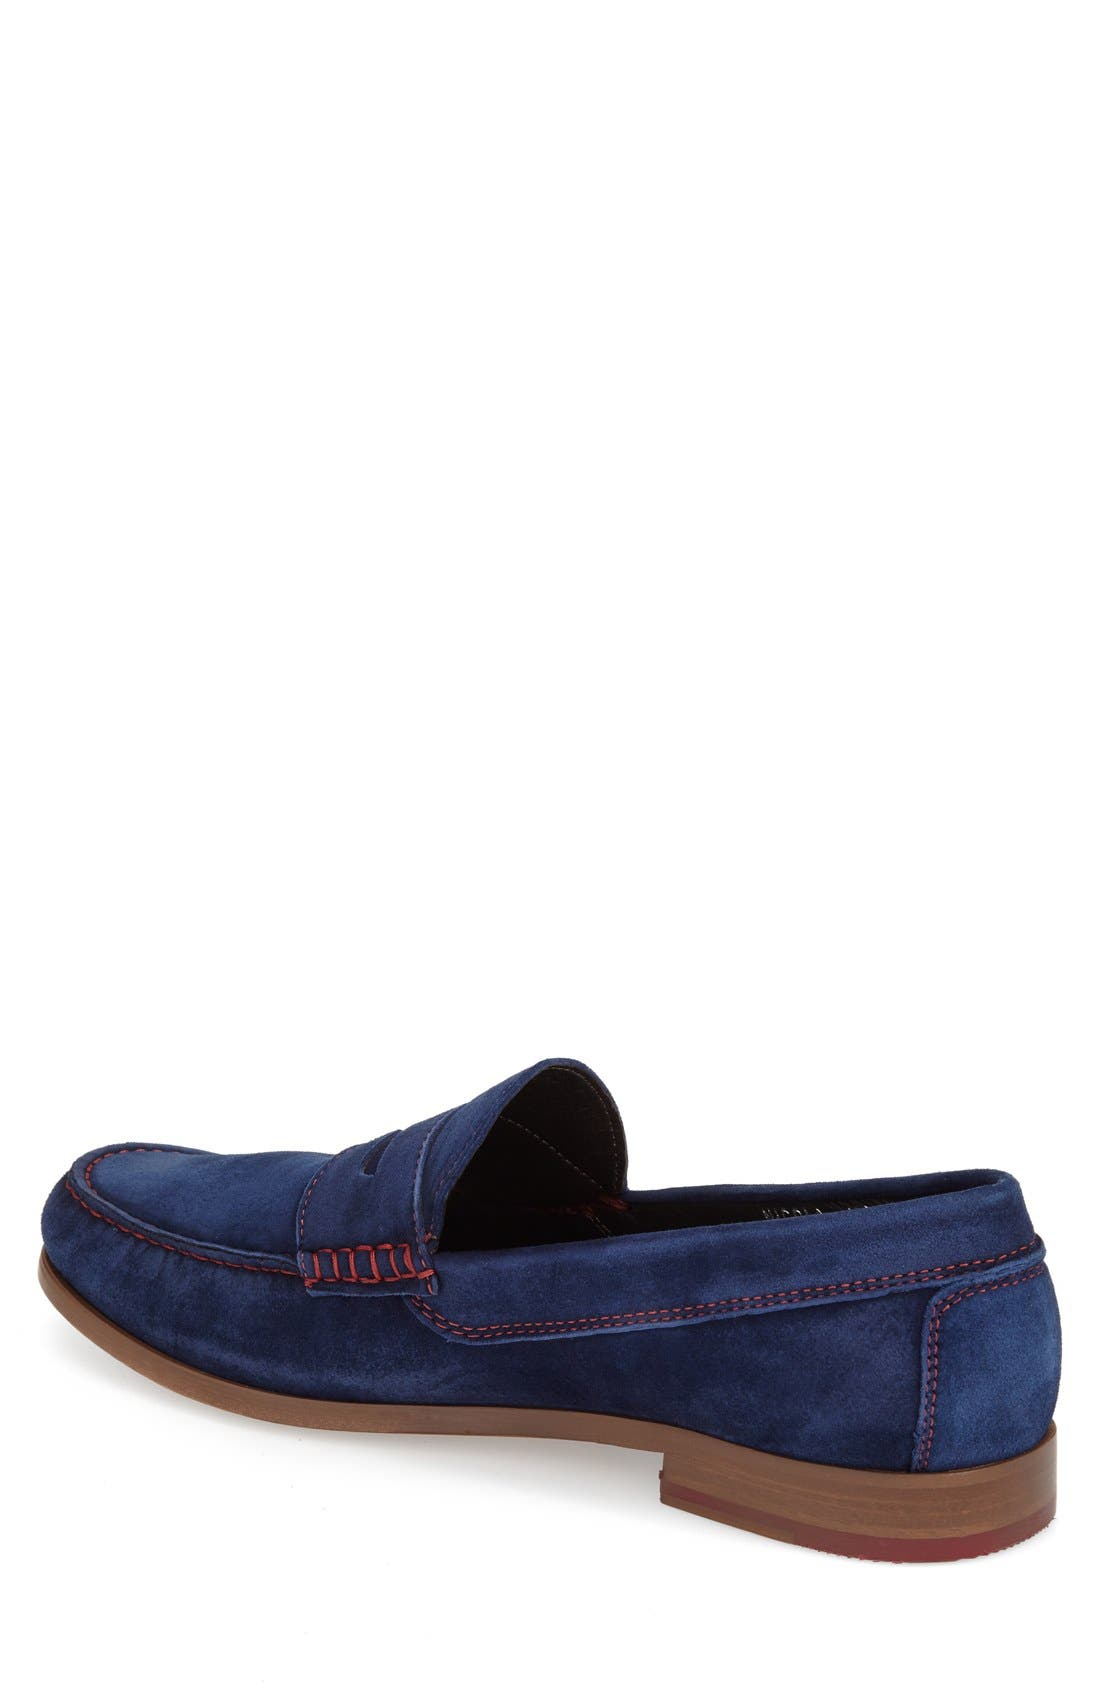 Nicola Penny Loafer,                             Alternate thumbnail 19, color,